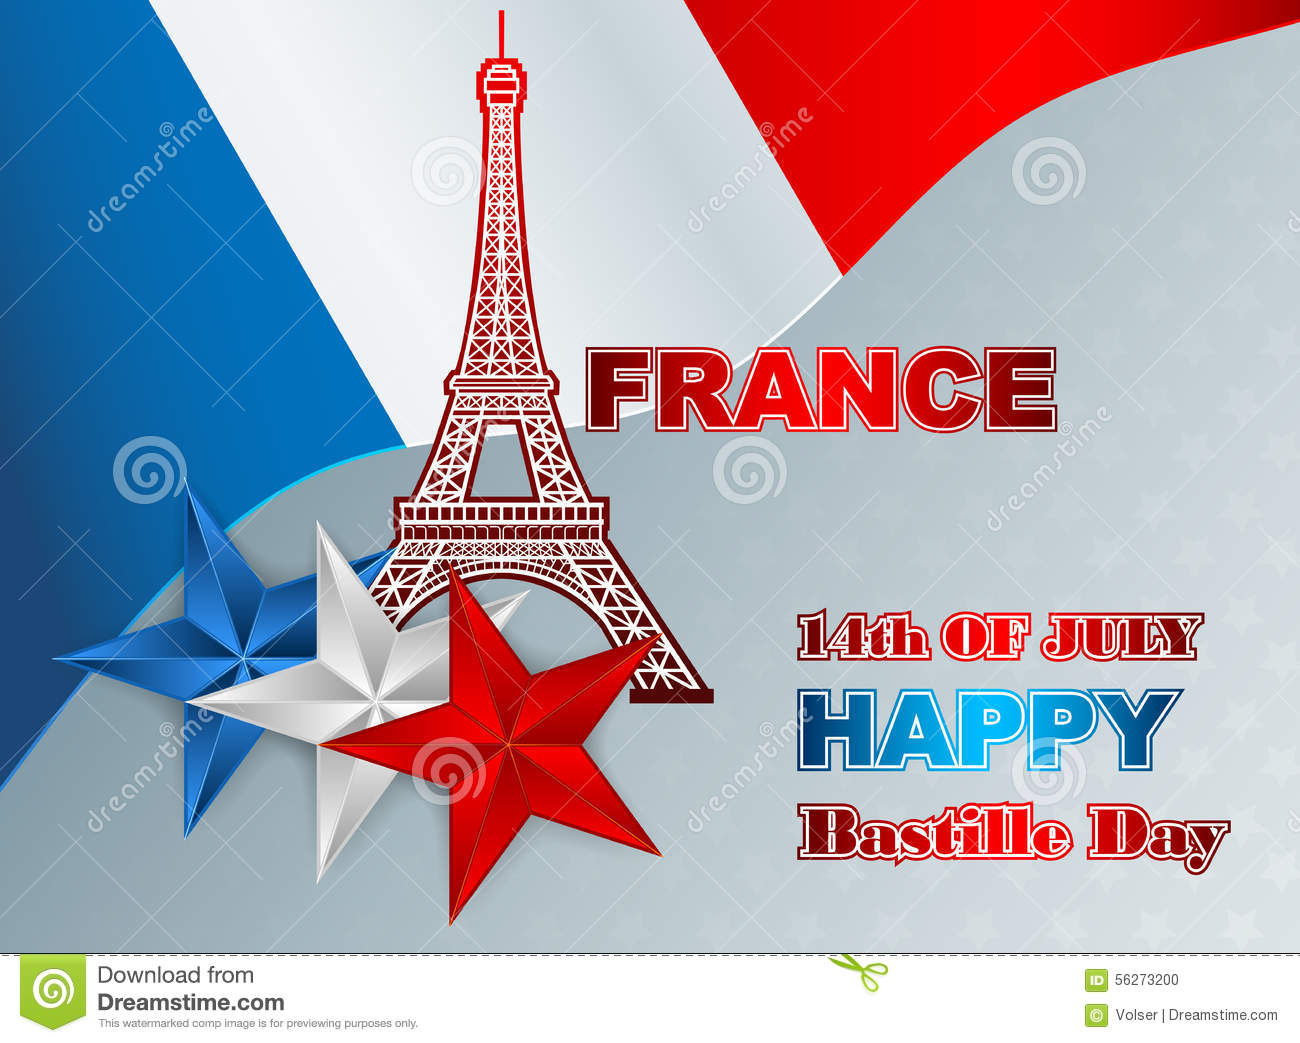 bastille day french independence day essay Learn history essay french revolution with free interactive flashcards choose from 500 different sets of history essay french revolution flashcards on quizlet.